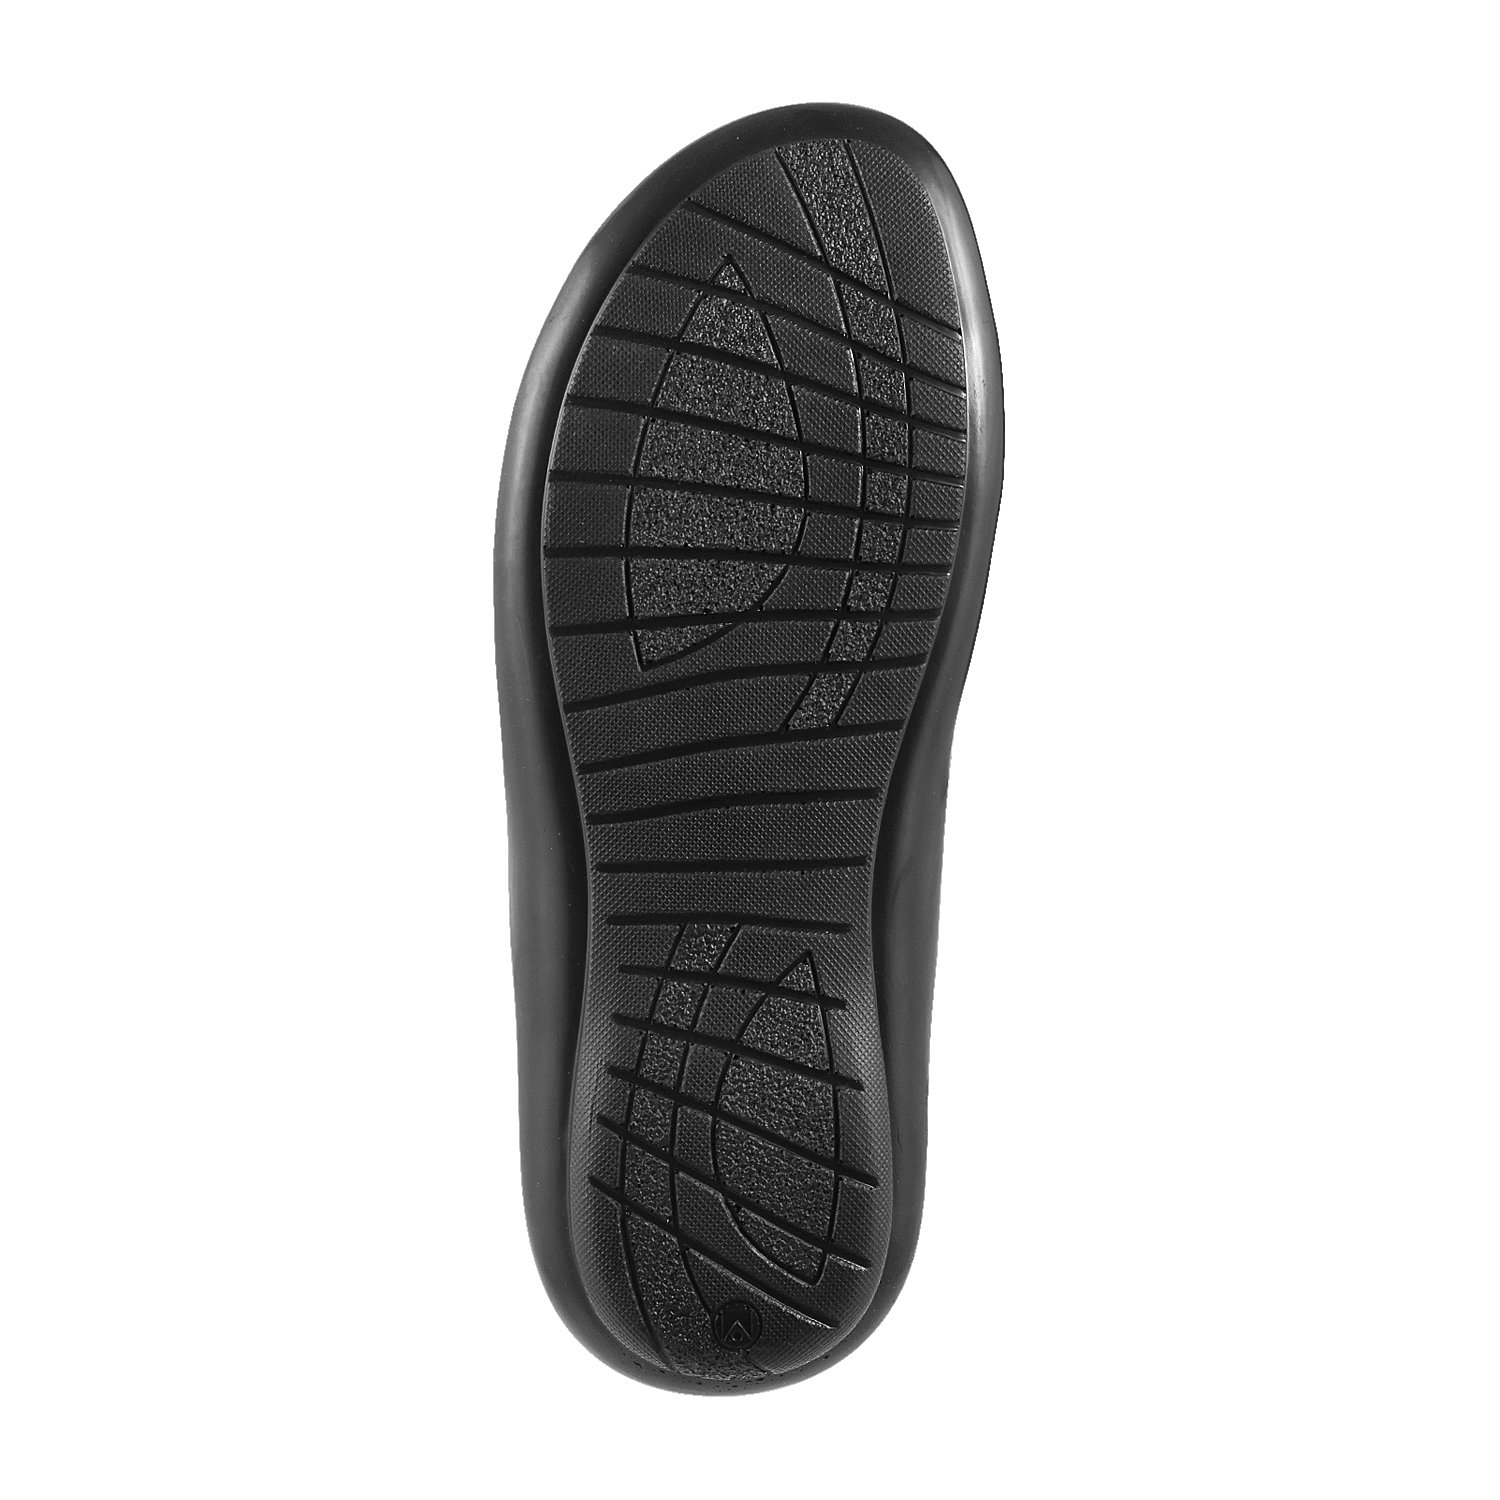 d7d715a885e432 Metro Men s Thong Sandals  Buy Online at Low Prices in India - Amazon.in